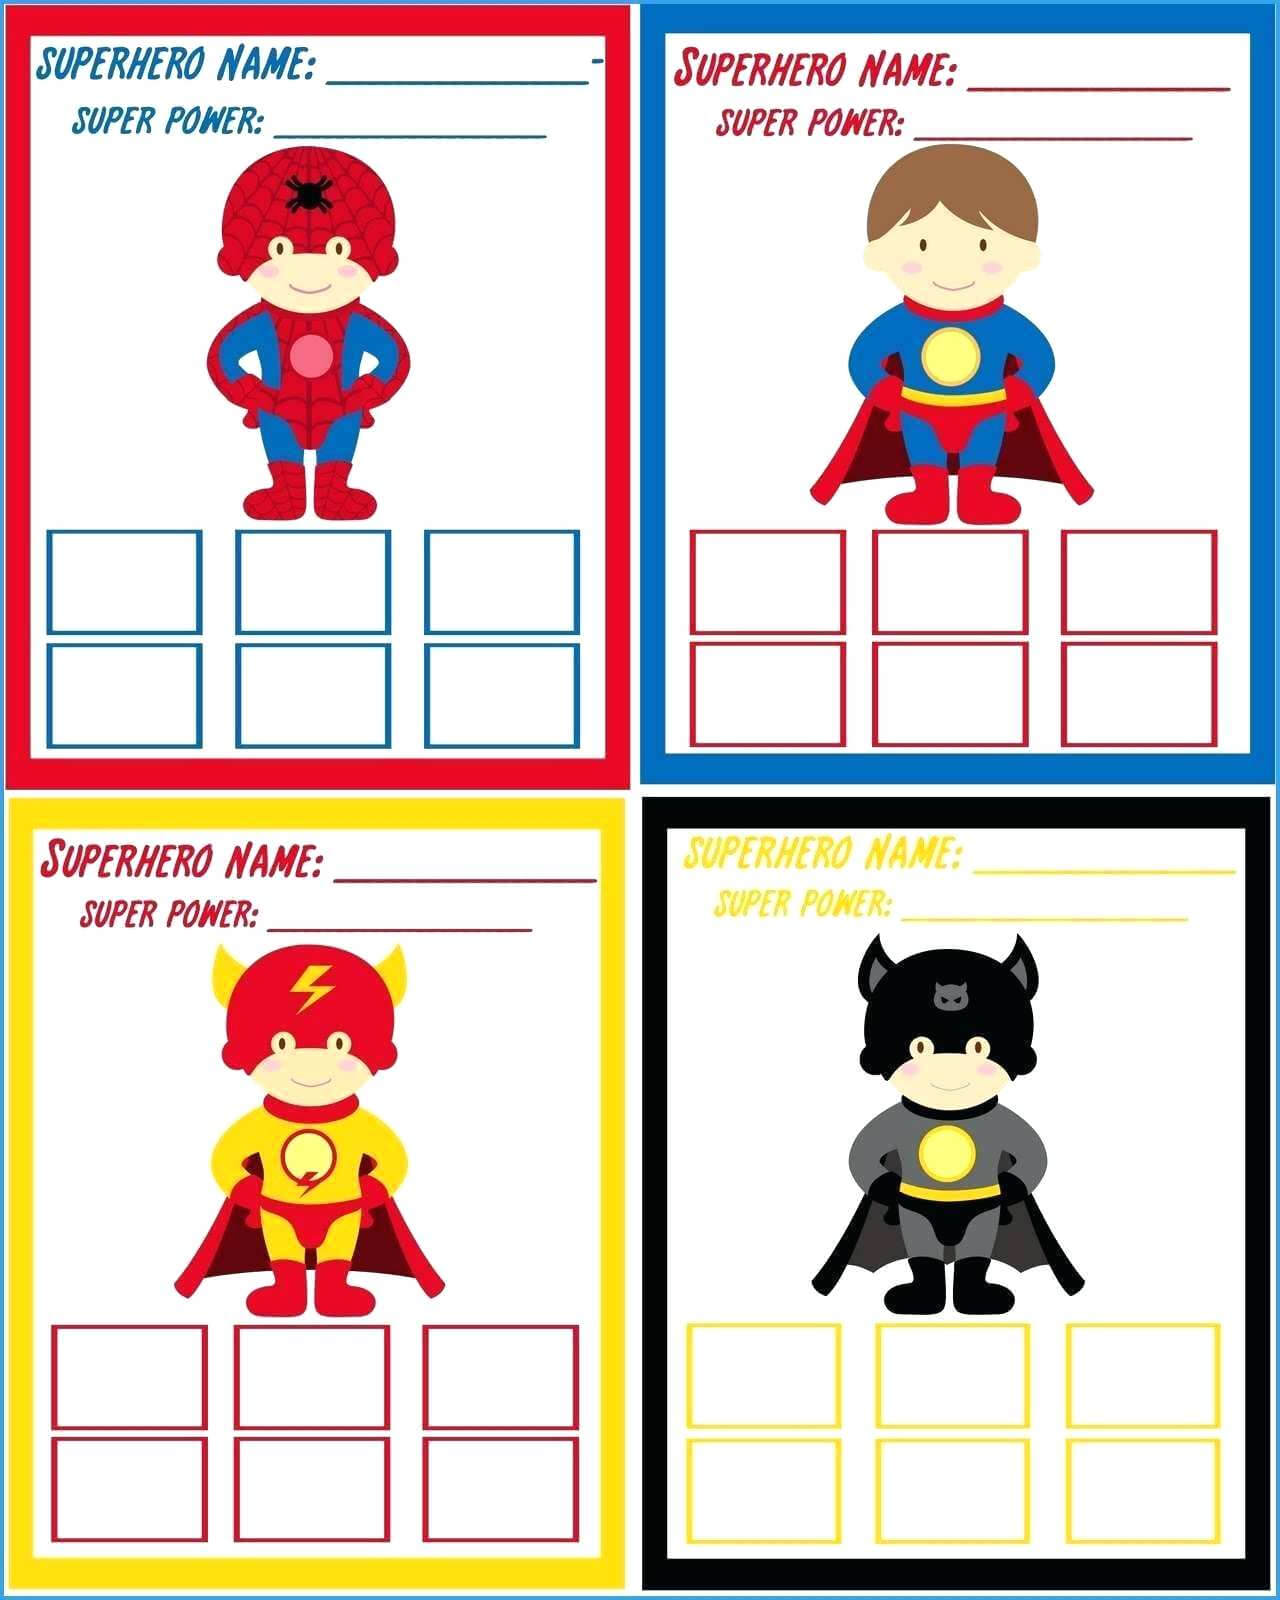 Superhero Template Printable – Amicuscolor.co with Superman Birthday Card Template